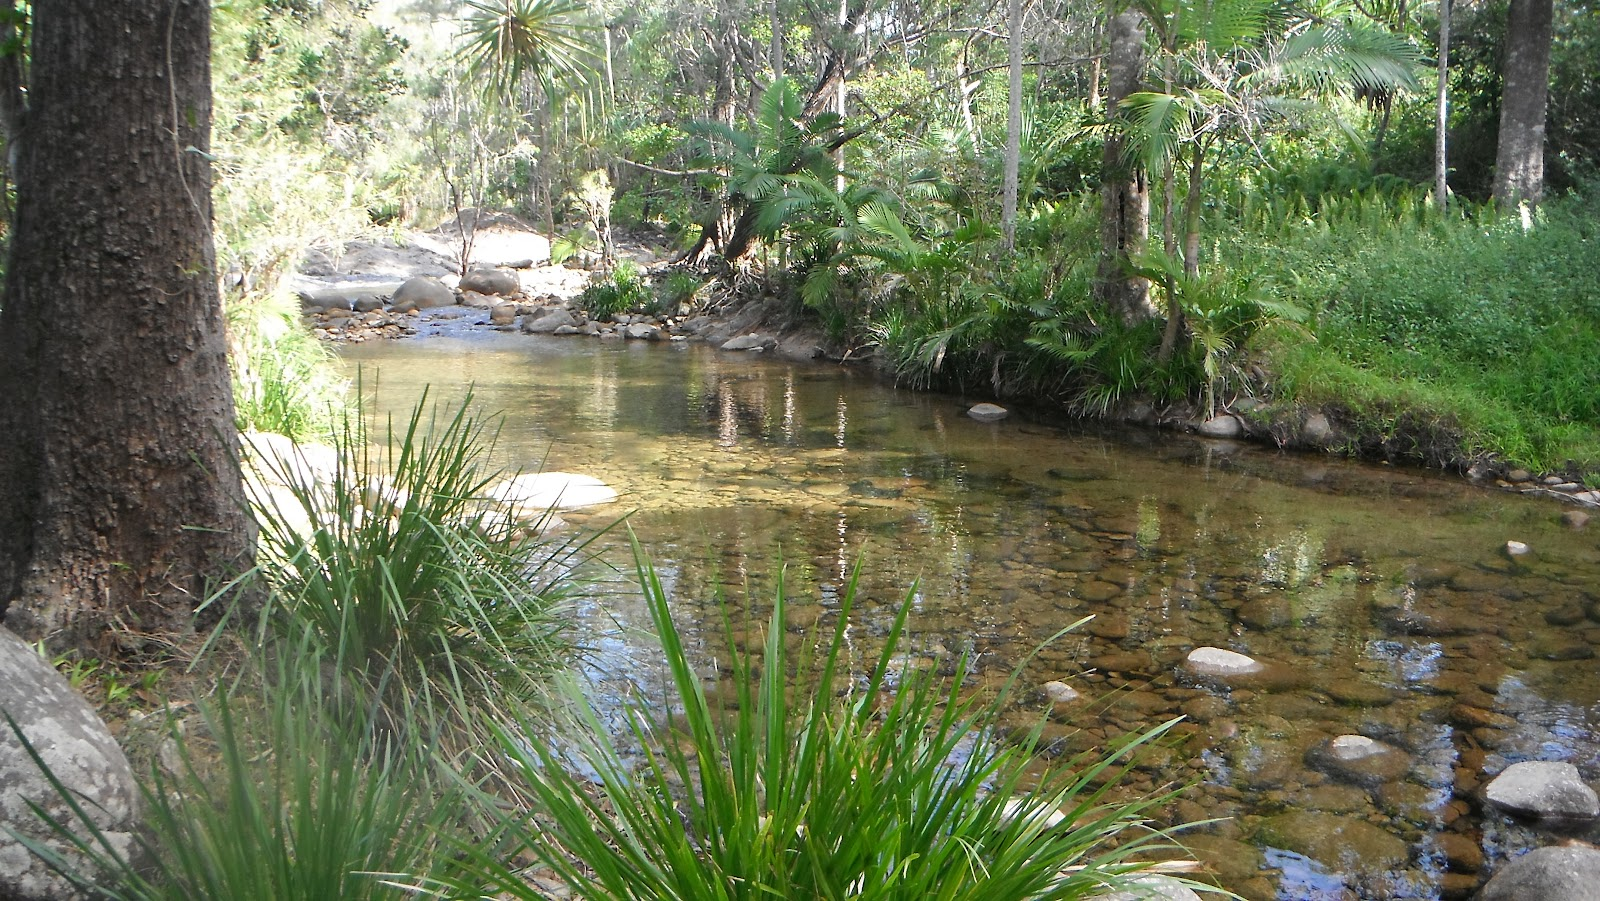 Boulder Creek The Round Australia Trip Completed But